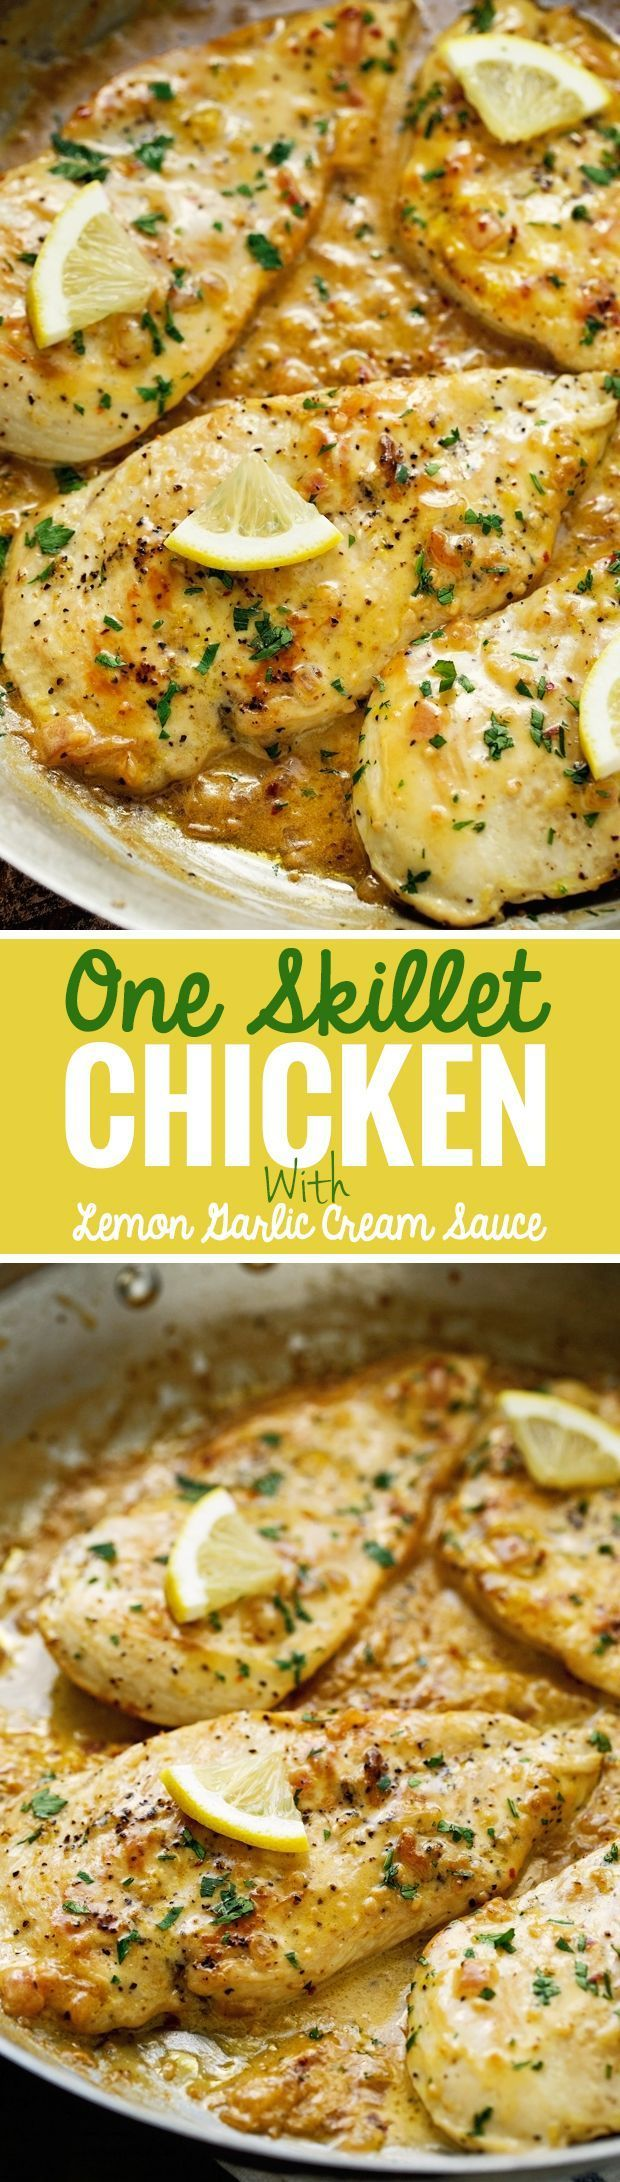 One Skillet Chicken topped with A Lemon garlic Cream Sauce - Ready in 30 minutes are perfect over a bed of angel hair pasta!